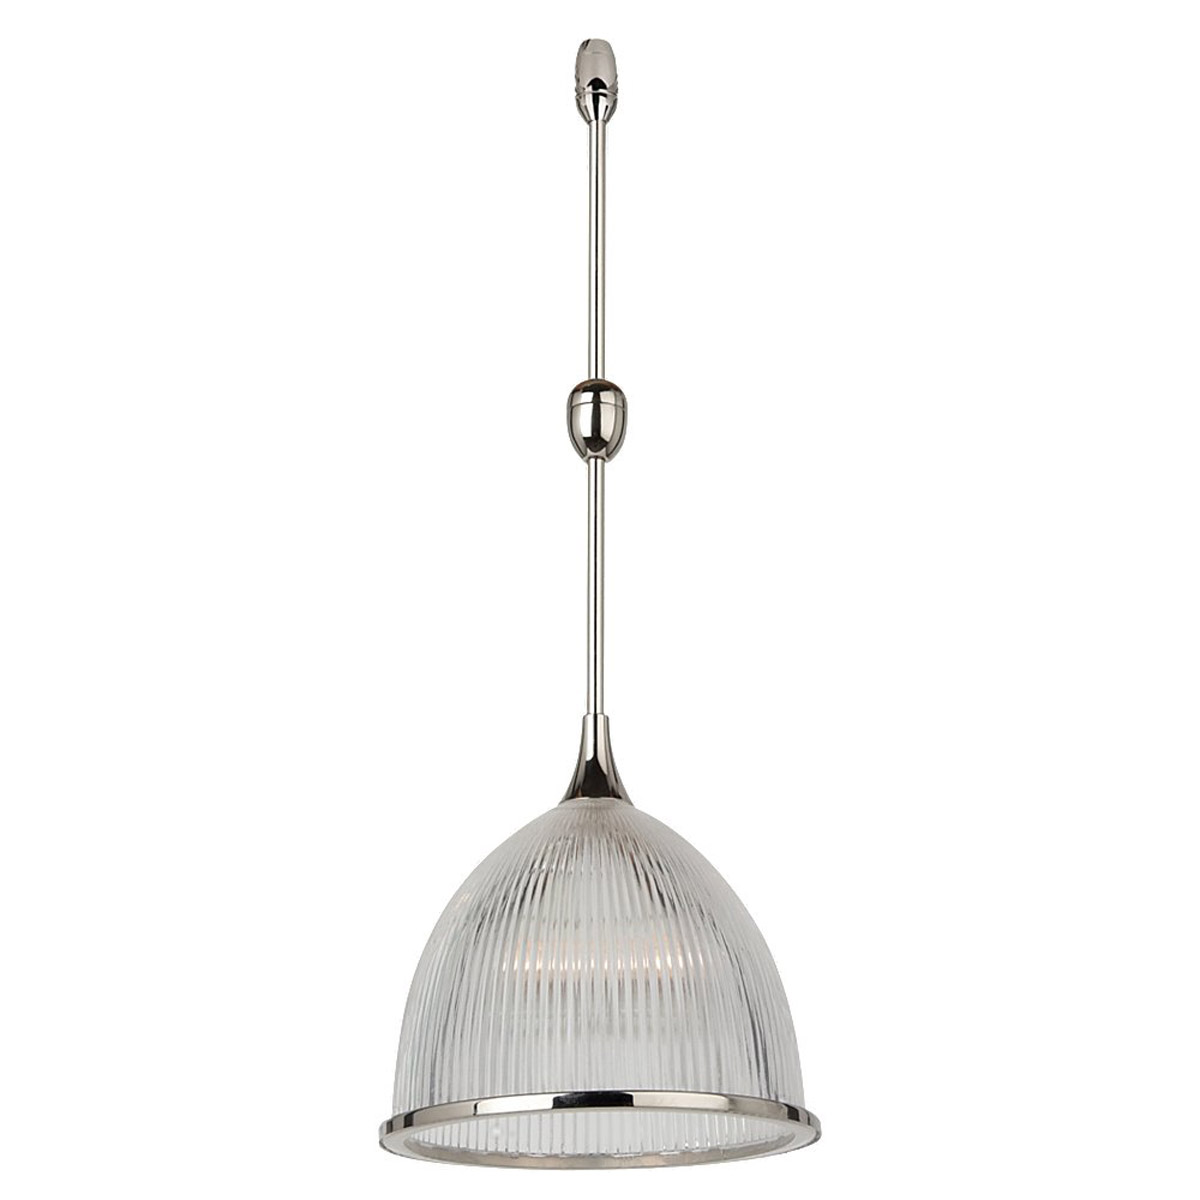 Sea Gull Lighting Ambiance Transitions 1 Light Rail Pendant in Polished Nickel 94687-841